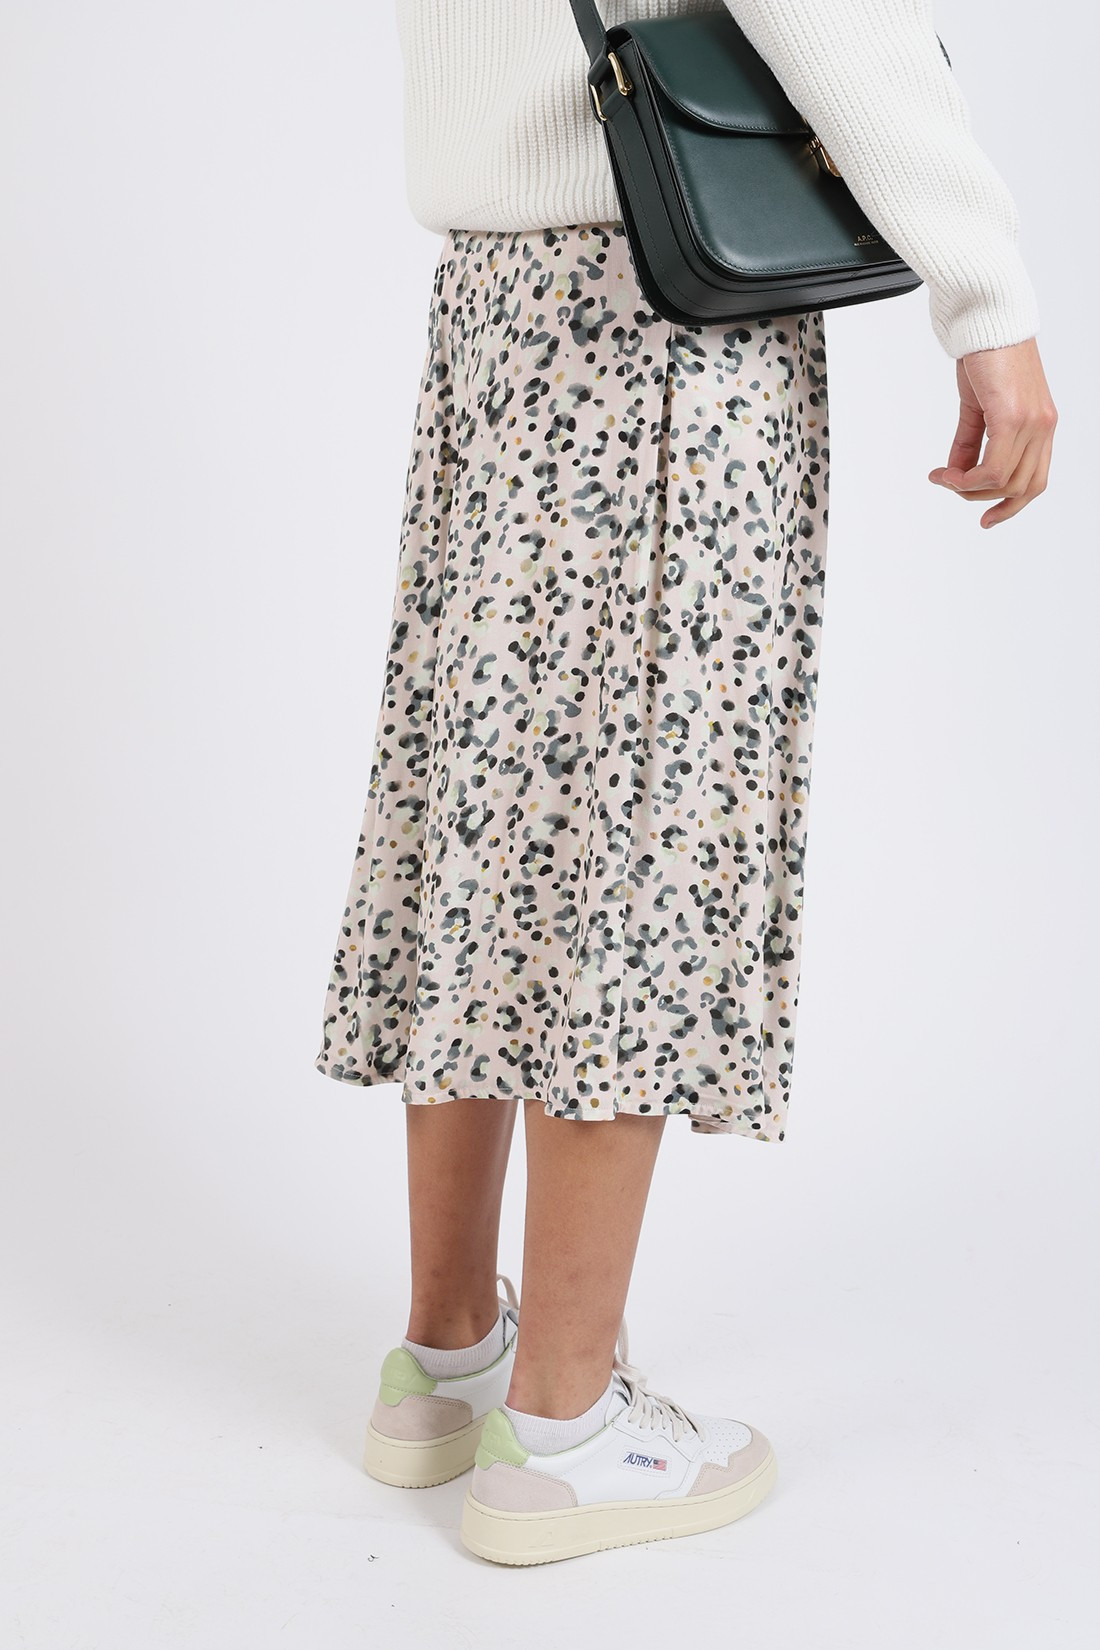 BELLEROSE FOR WOMAN / Appleby skirt Display c